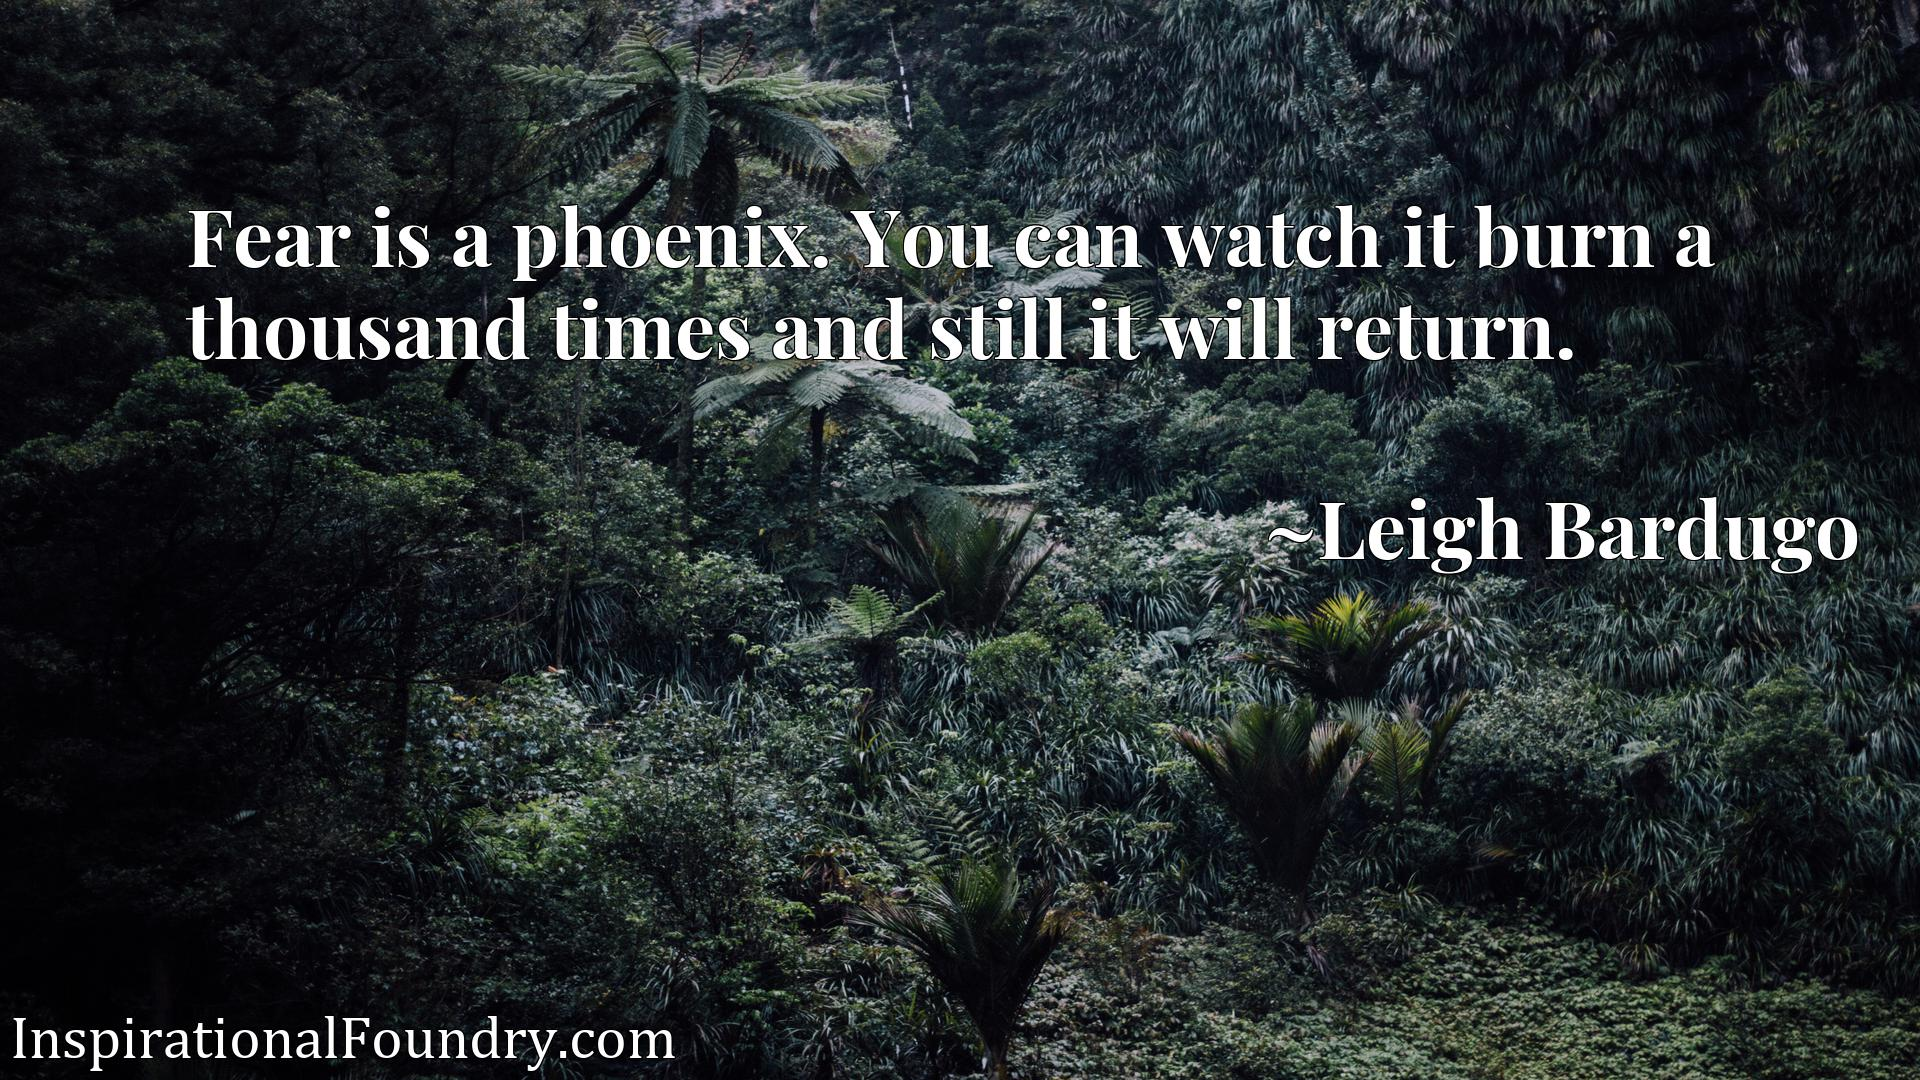 Fear is a phoenix. You can watch it burn a thousand times and still it will return.